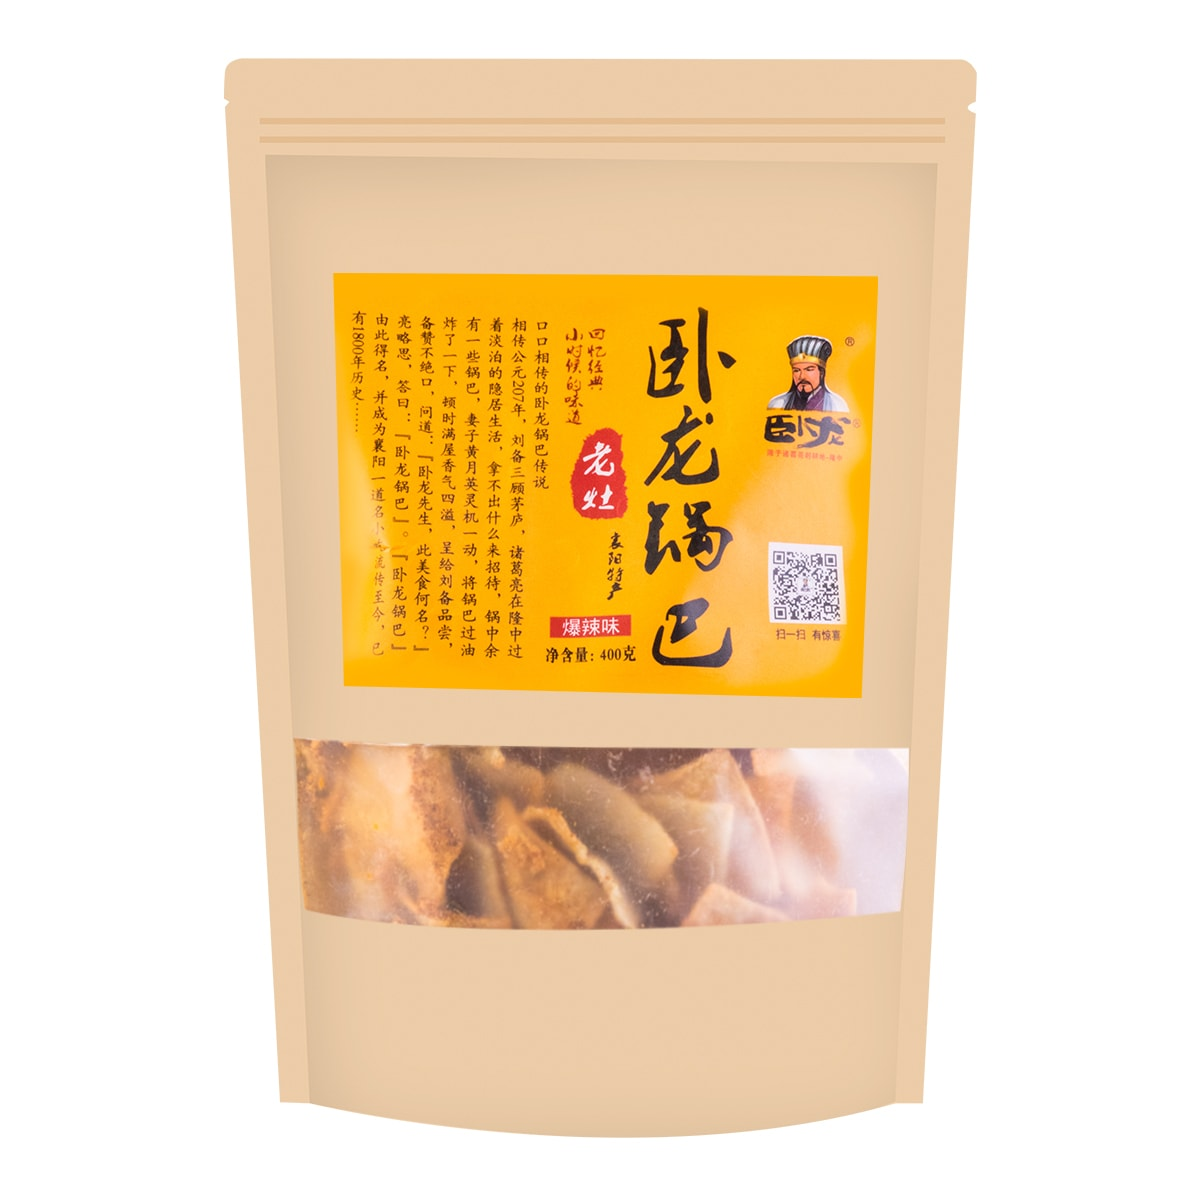 WOLONG Rice Crust Hot Spicy 400g